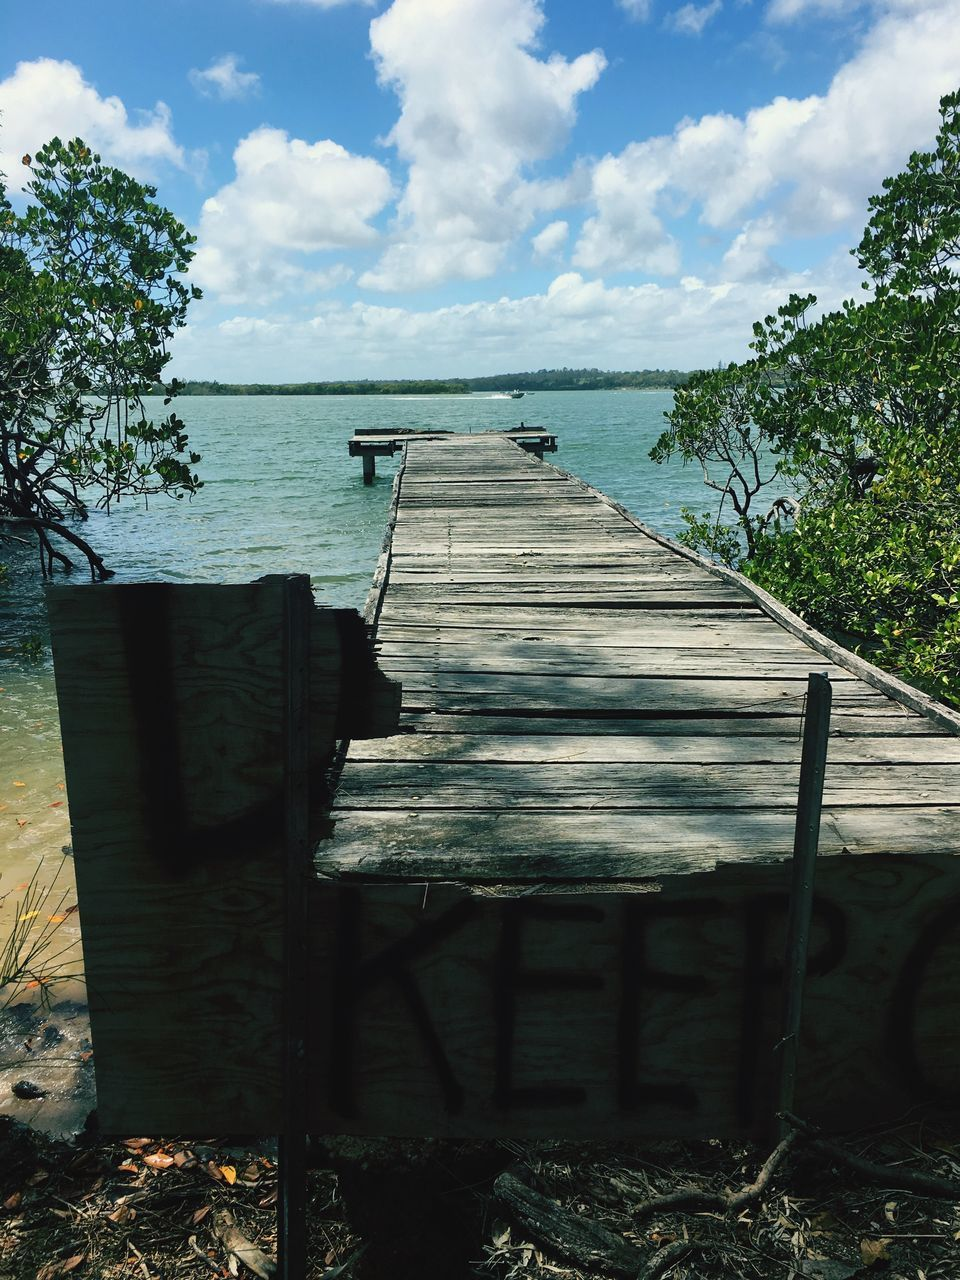 sky, water, sea, tranquility, nature, wood - material, day, cloud - sky, no people, tranquil scene, outdoors, sunlight, shadow, scenics, beauty in nature, horizon over water, tree